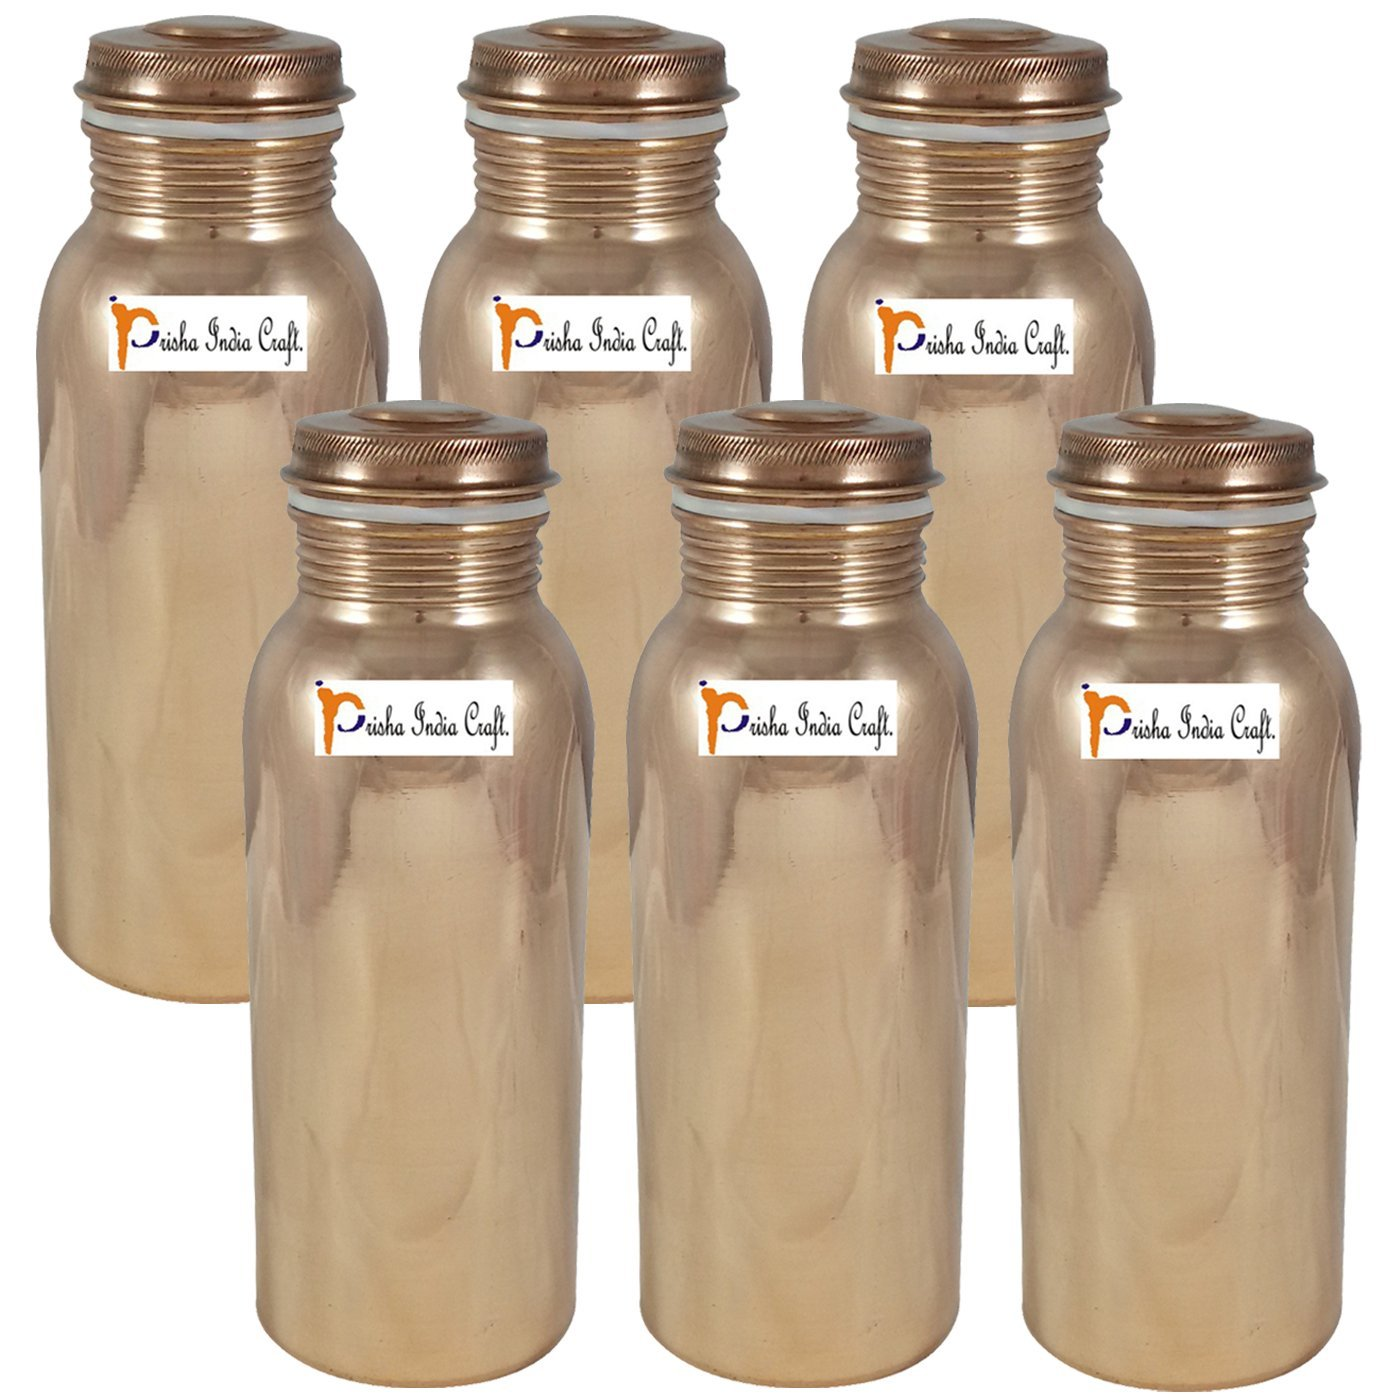 700ml / 23.67oz - Set of 6 - Prisha India Craft ® Pure Copper Water Bottle for Health Benefits - Handmade Water Bottles - Christmas Gift